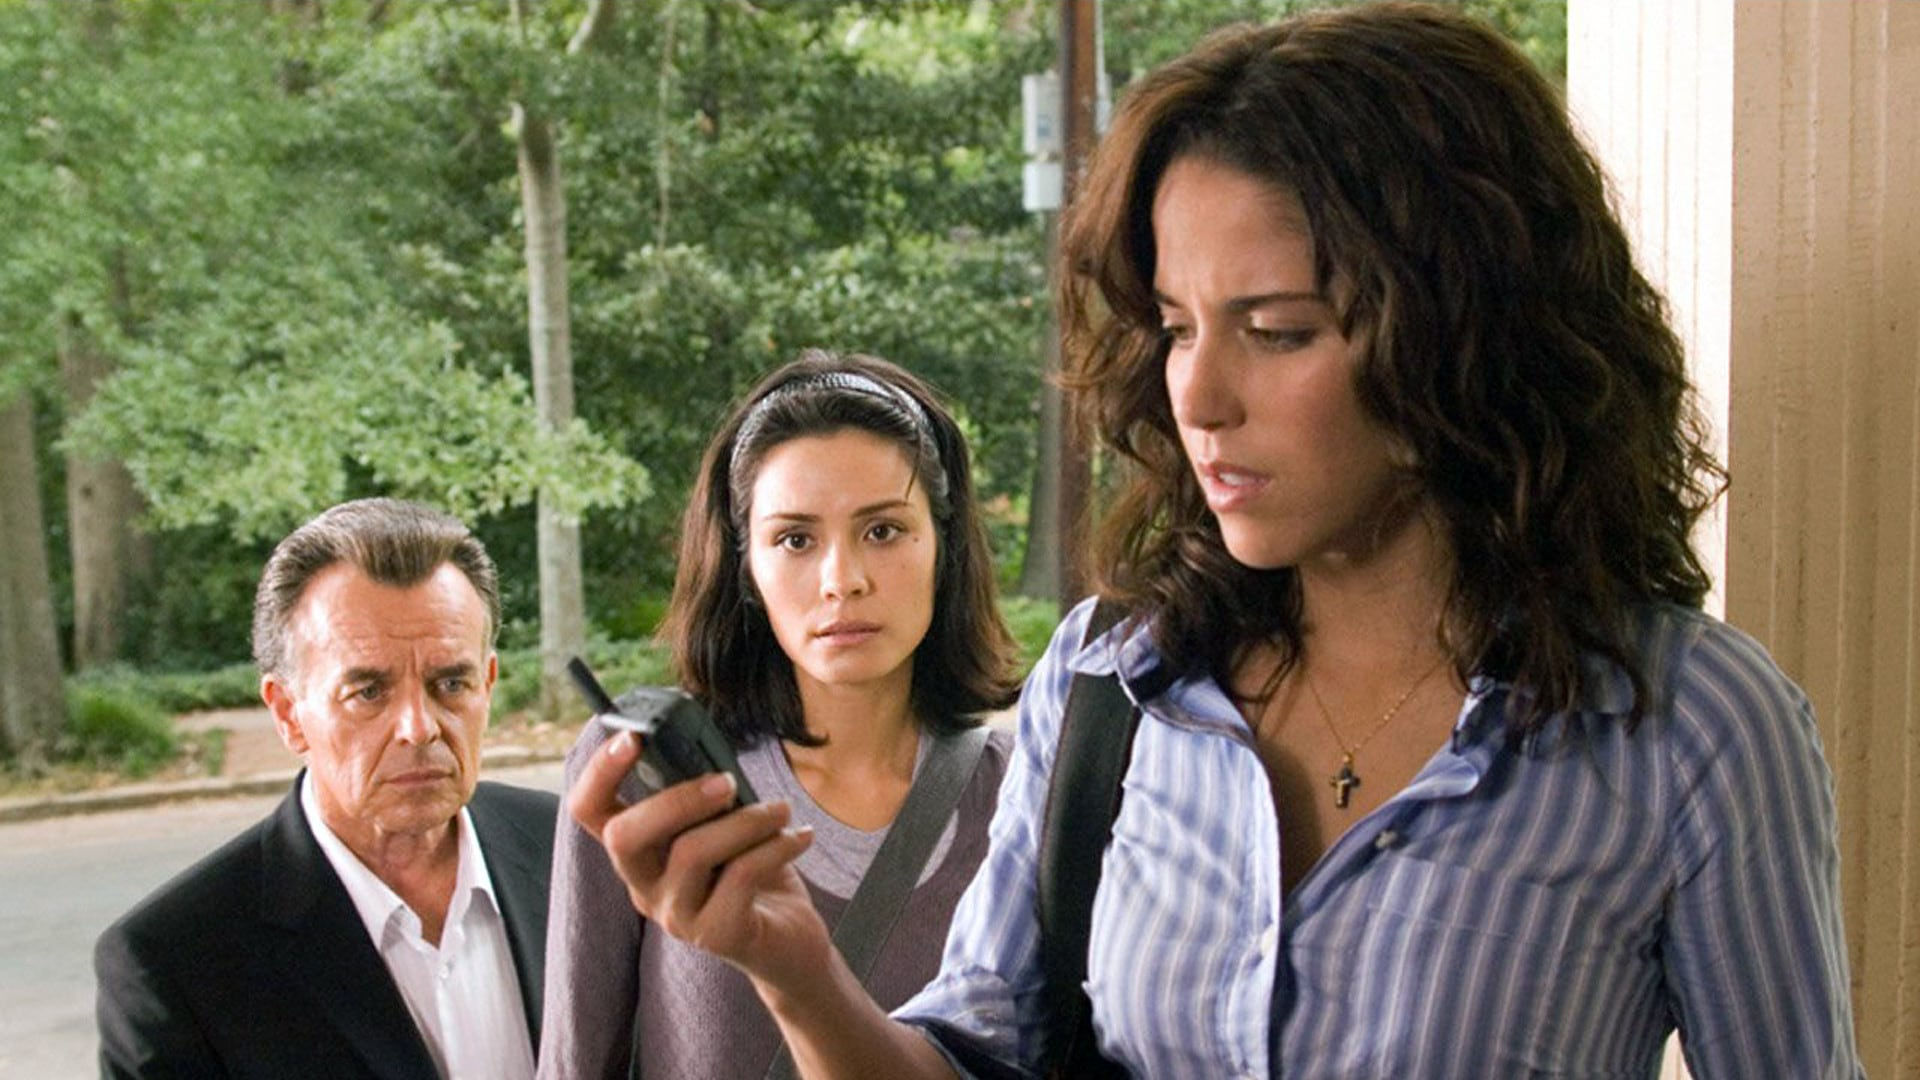 Ray Wise and Shannyn Sossamon investigate as Ana Claudia Talancon receives one of the calls in One Missed Call (2008)